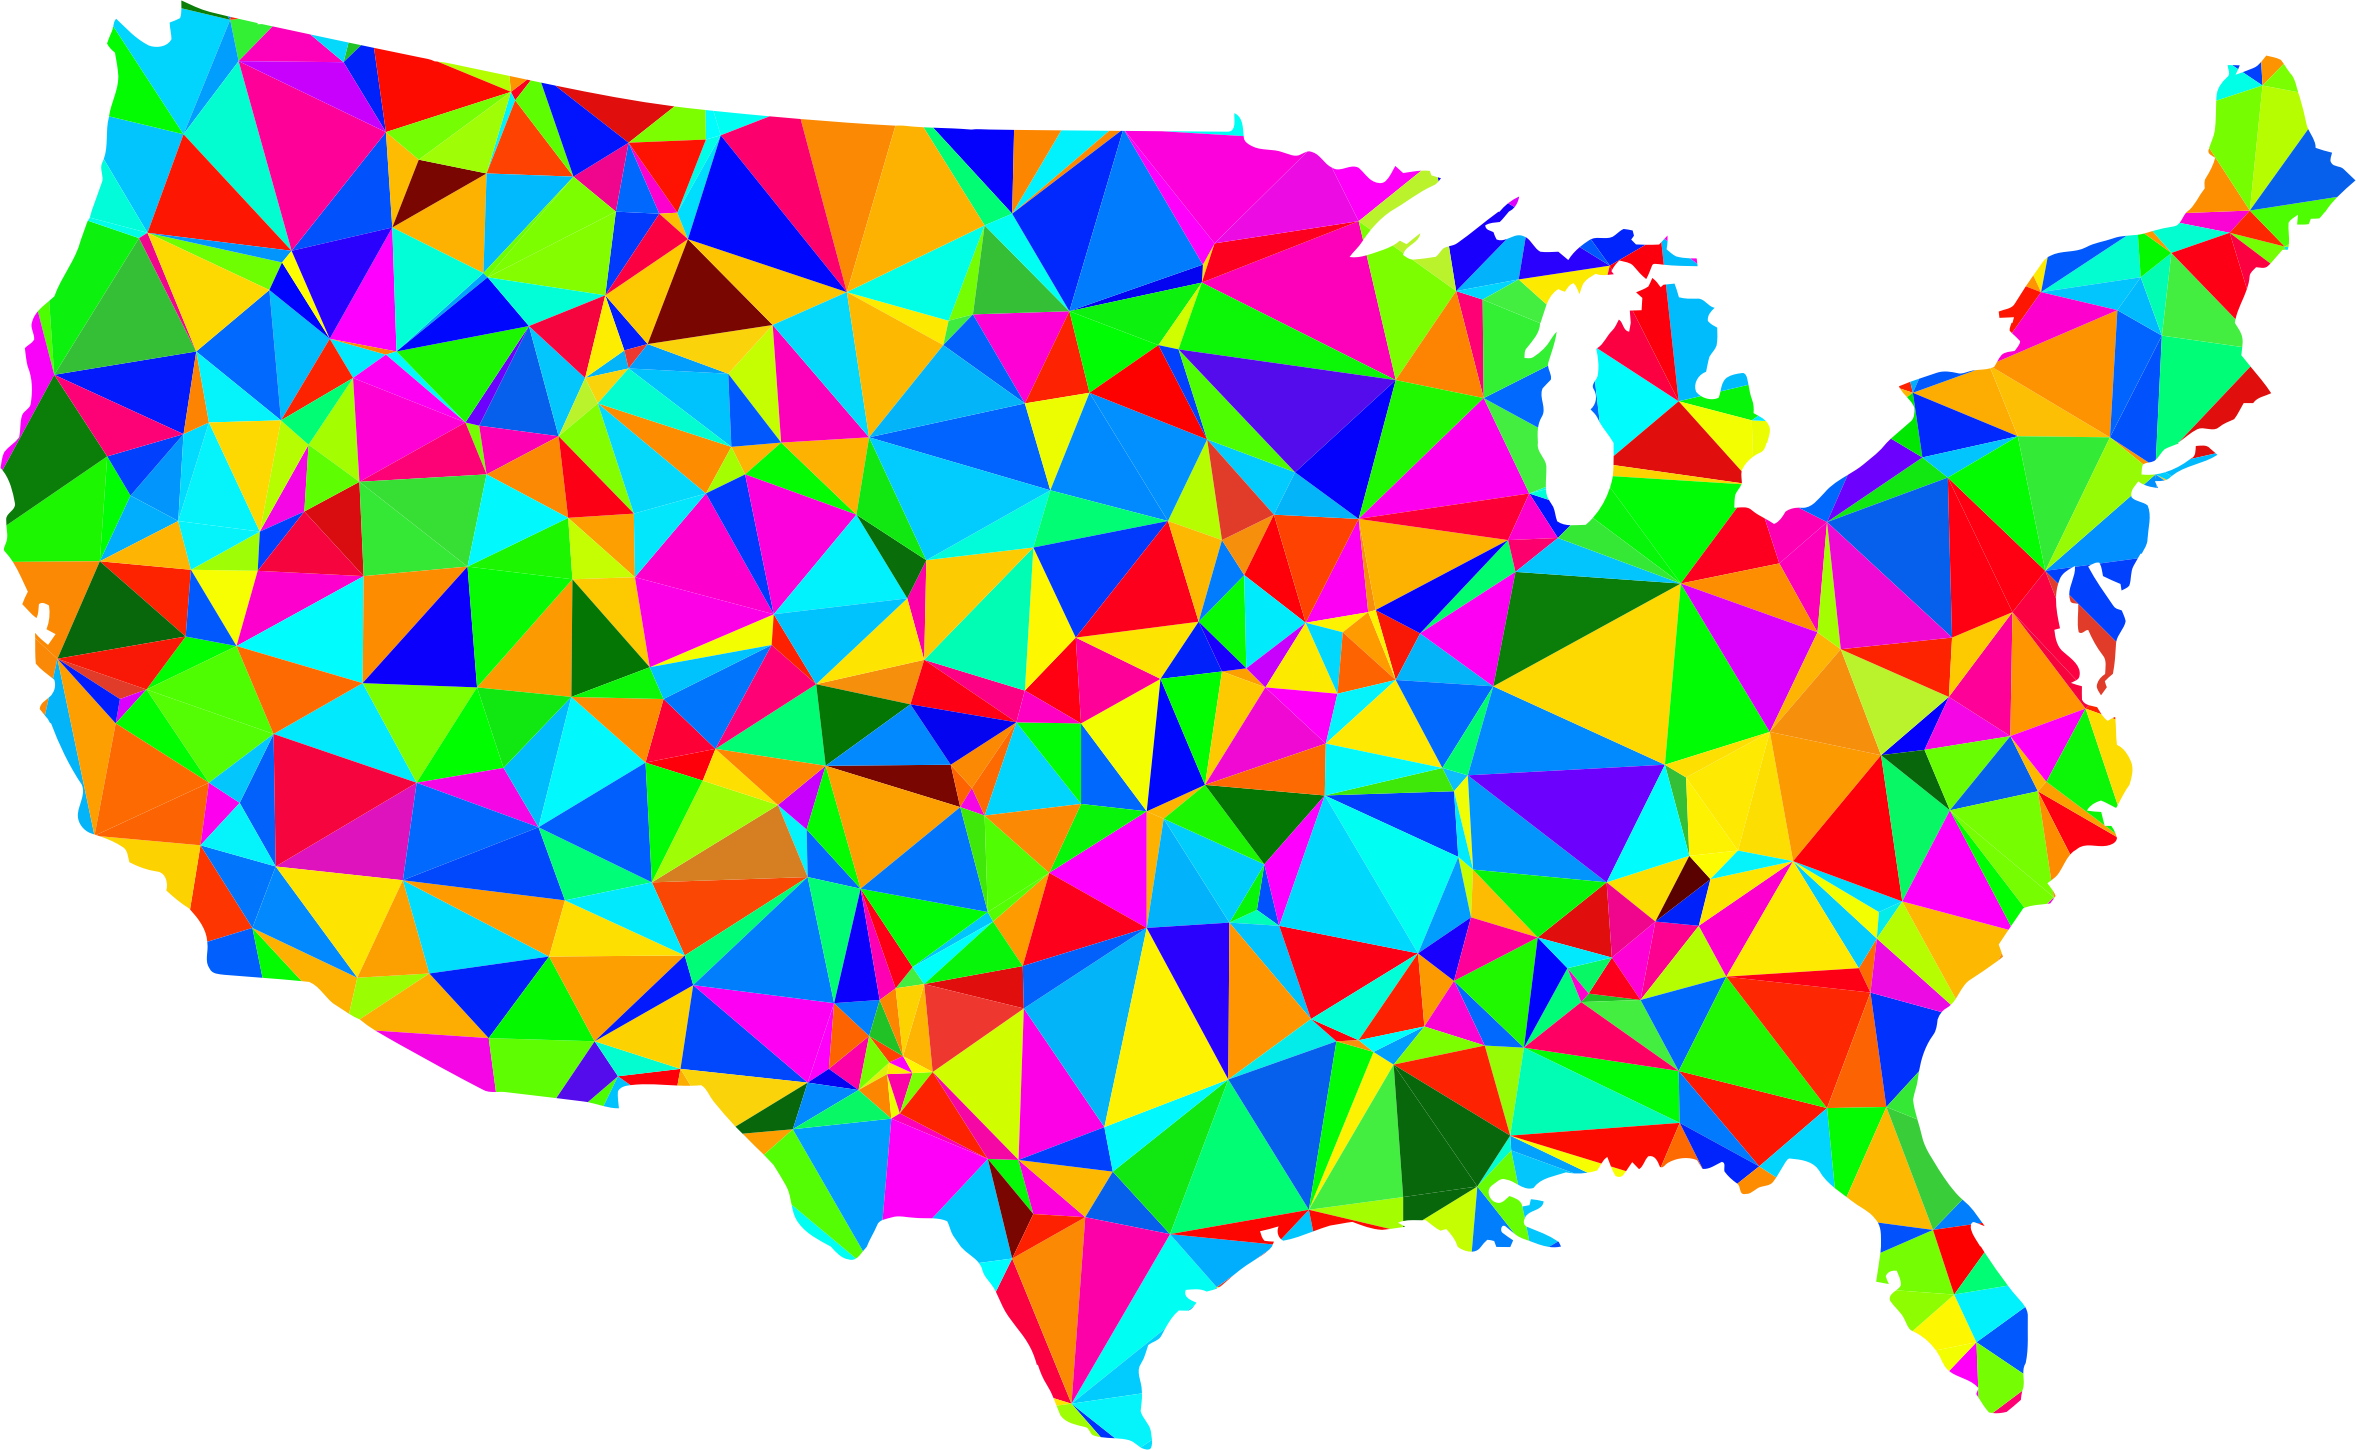 Us map clip art image stock Flat Shaded Low Poly America USA Map Icons PNG - Free PNG and Icons ... image stock